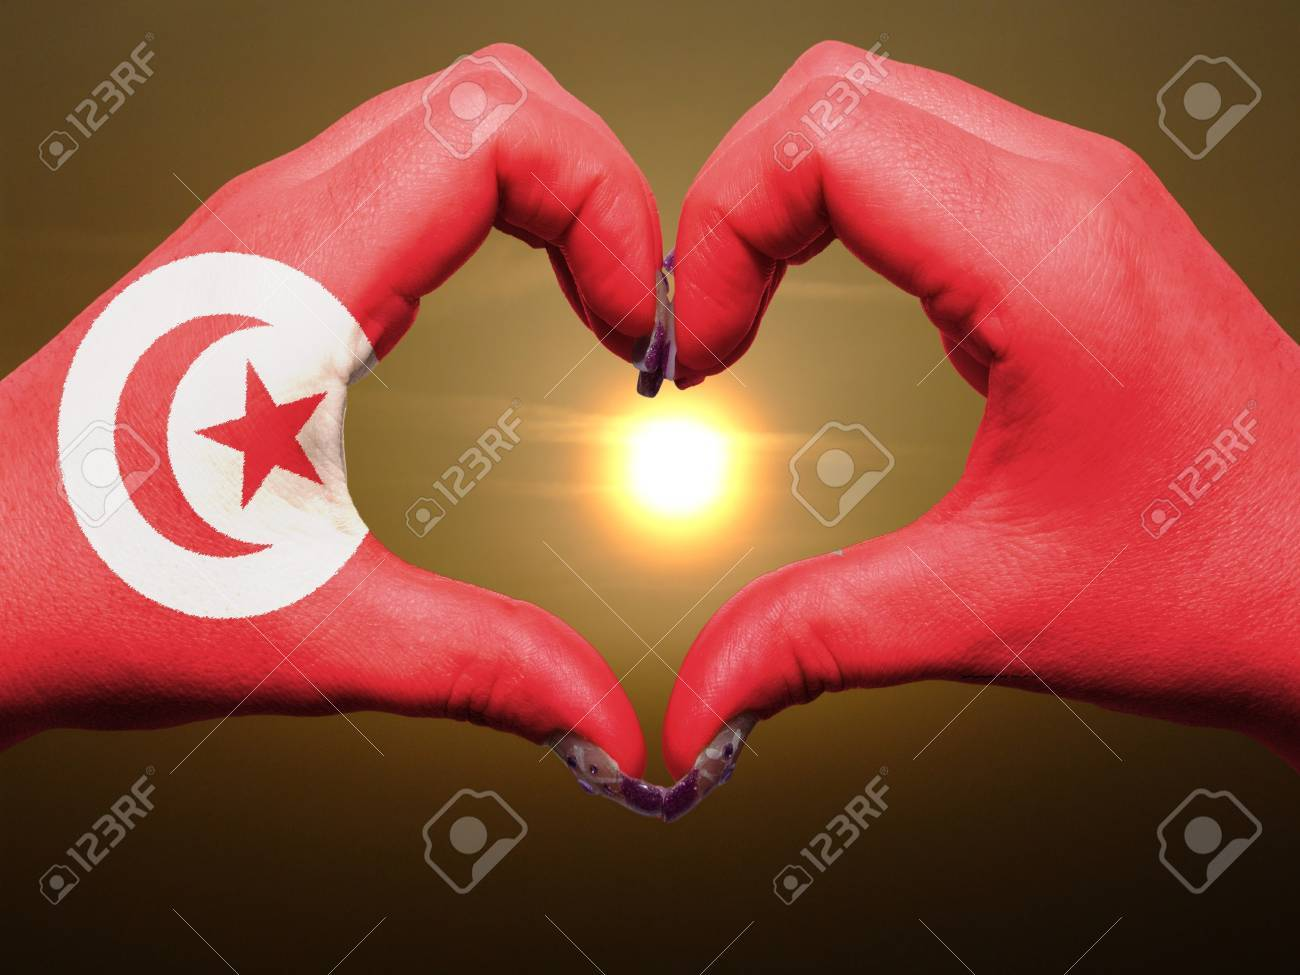 Tourist made gesture  by tunisia flag colored hands showing symbol of heart and love during sunrise Stock Photo - 13564023